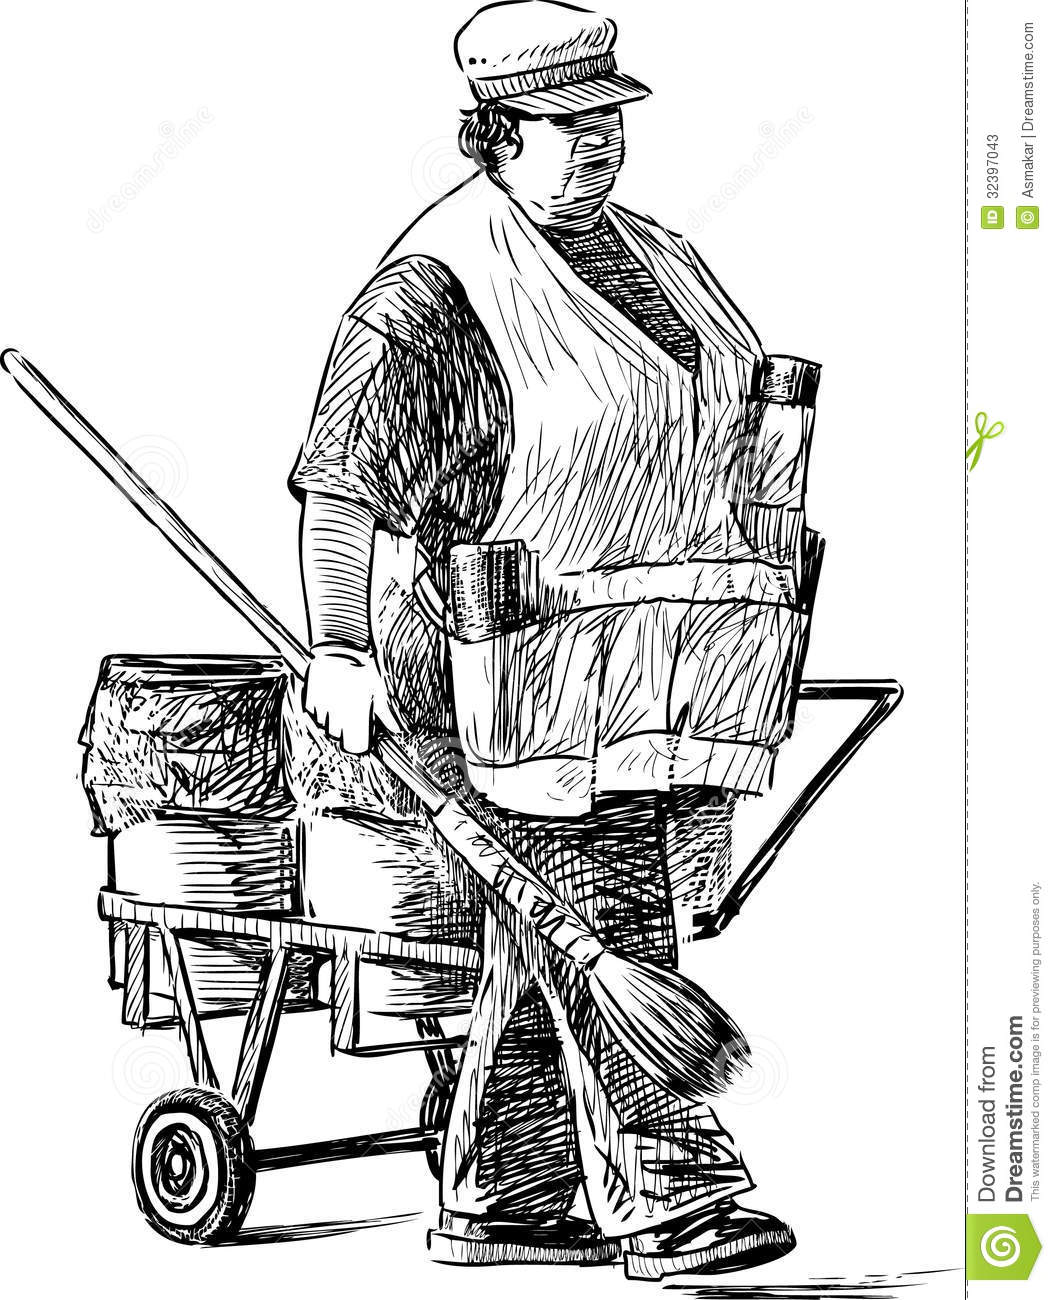 Janitor stock image. Image of adult, white, worker, screen